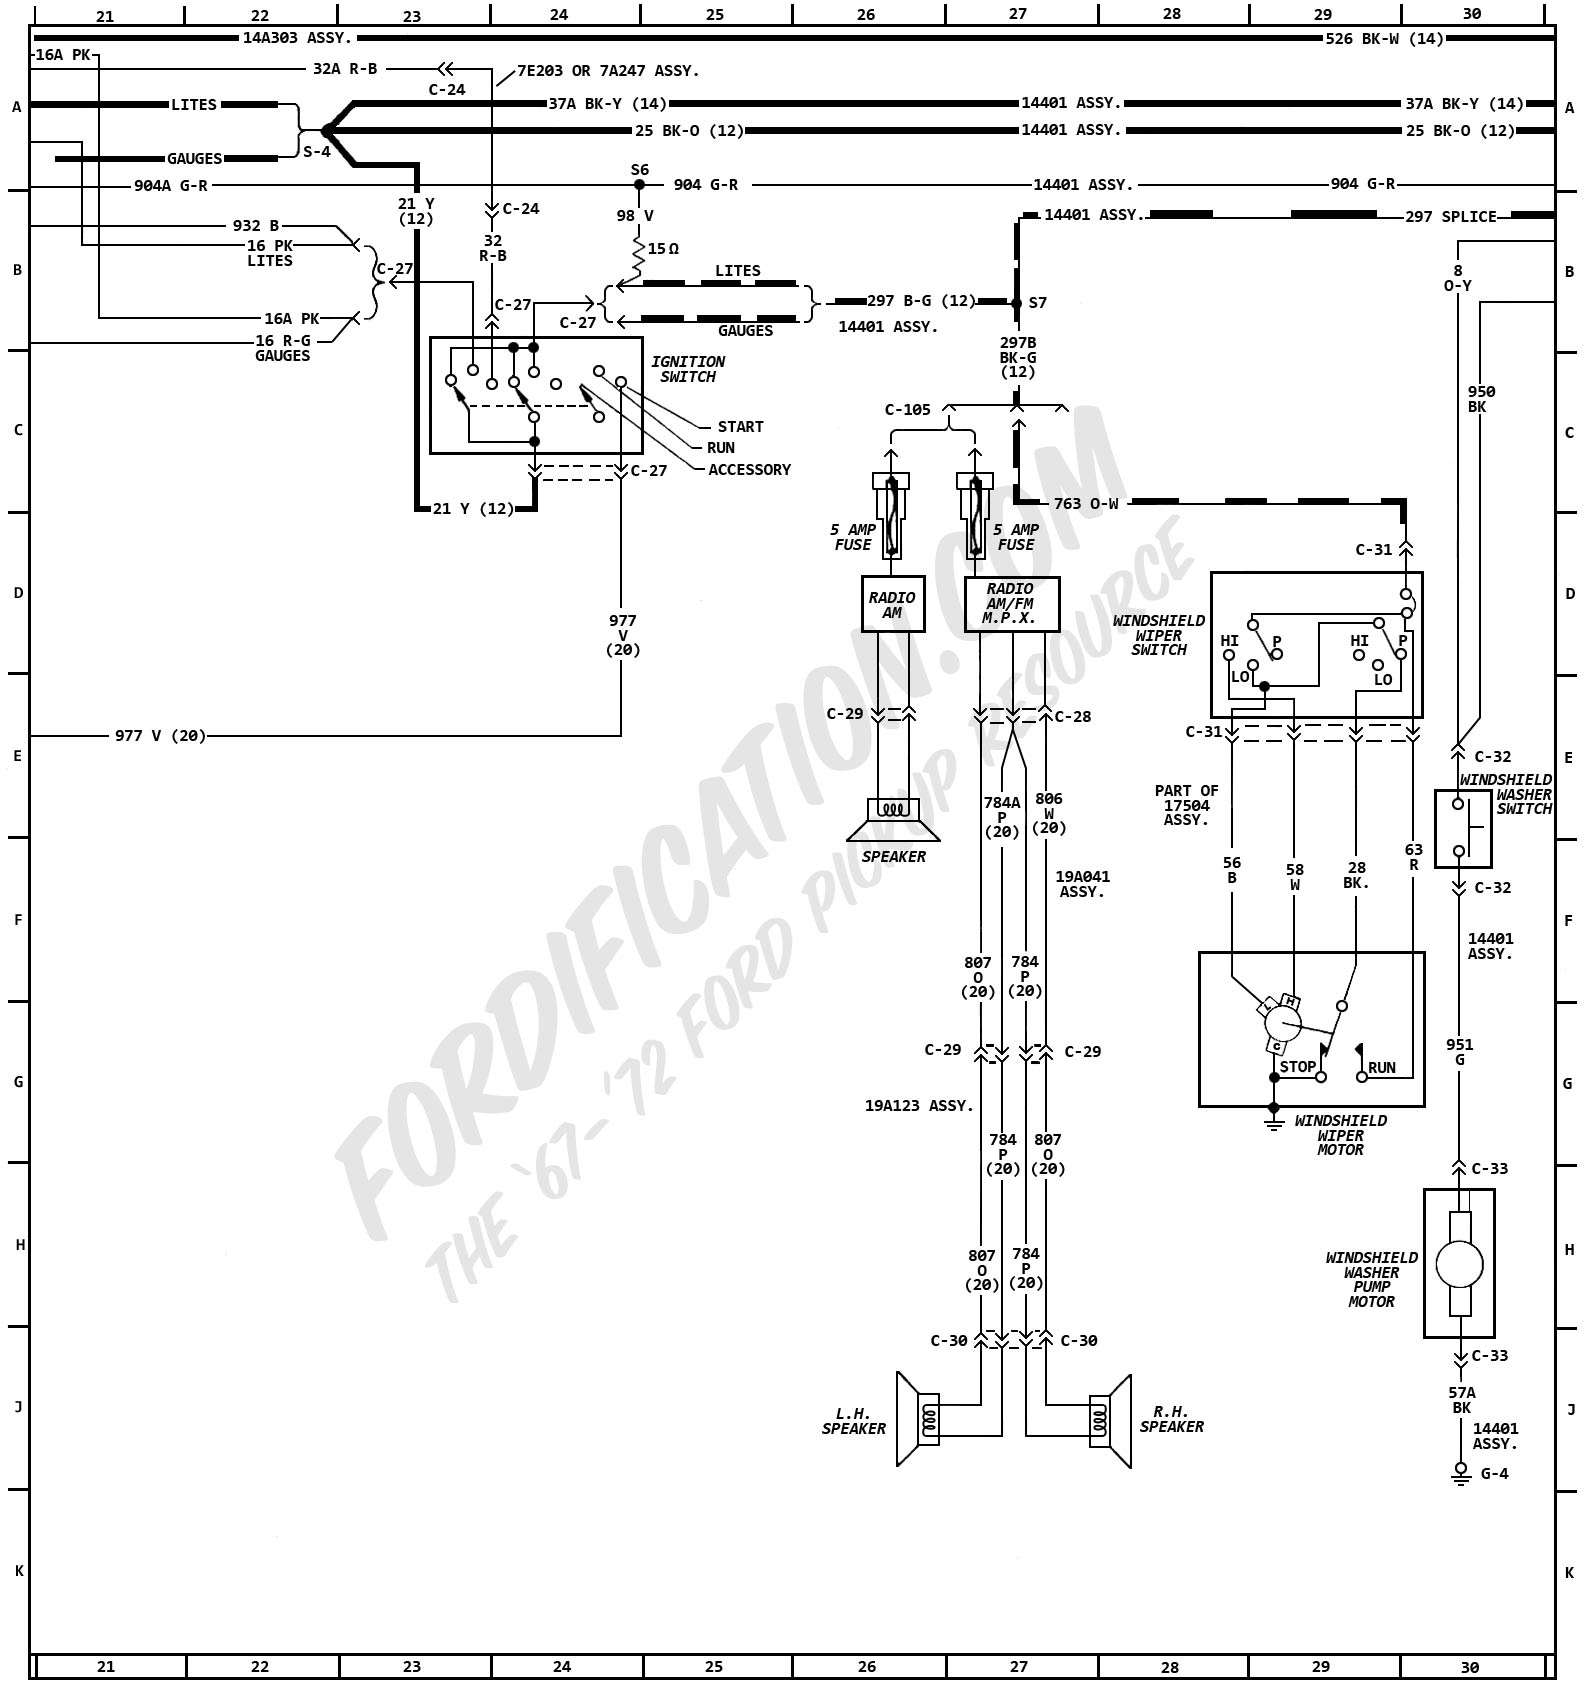 1972 Ford F100 Wiring Schematics Data Wiring Schema 1977 Ford Alternator  Wiring Diagram 1971 Ford Alternator Wiring Diagram